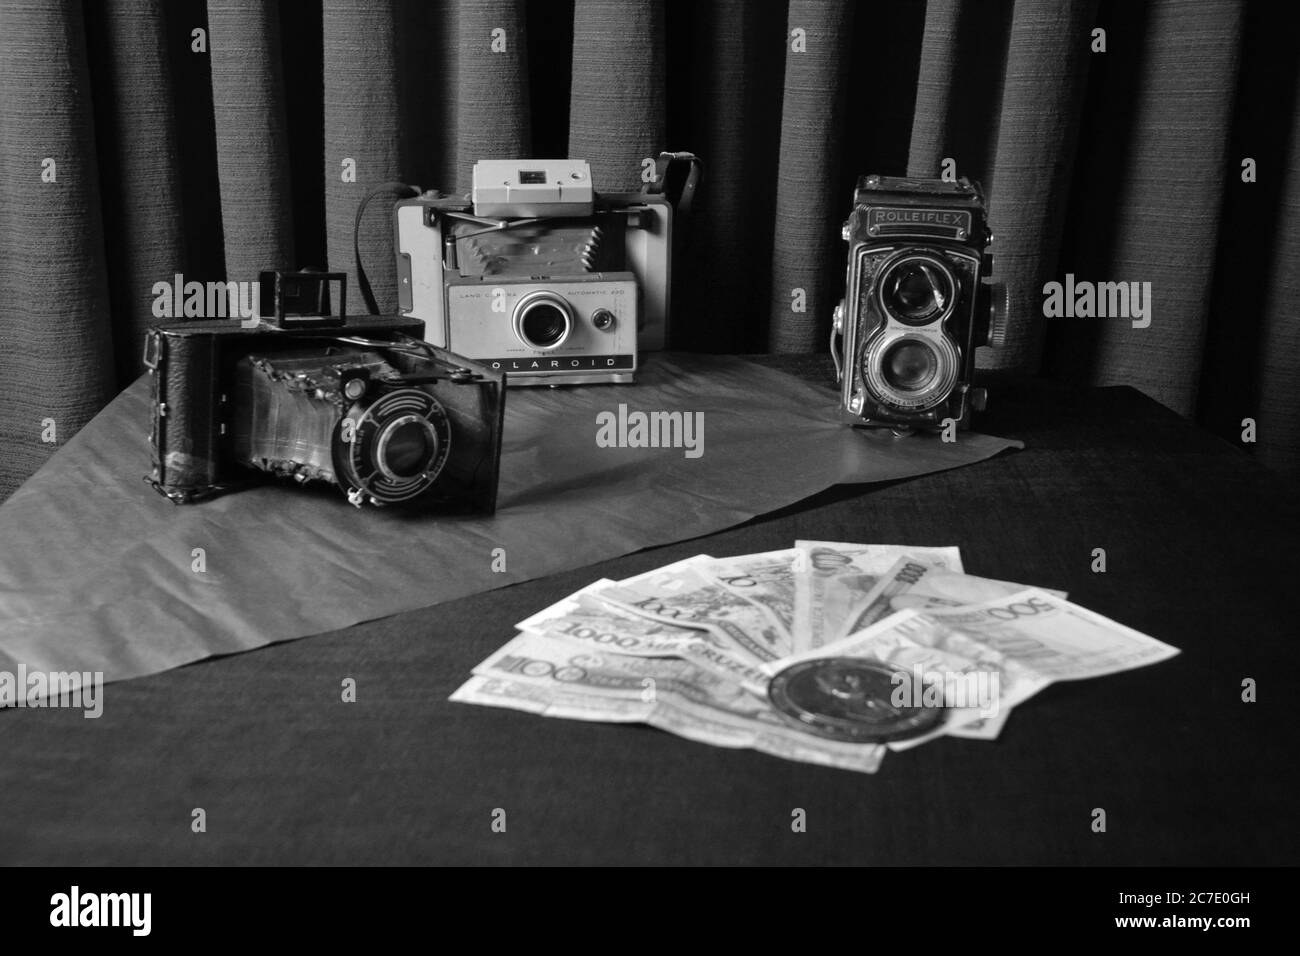 Classic Digital Cameras High Resolution Stock Photography and ...